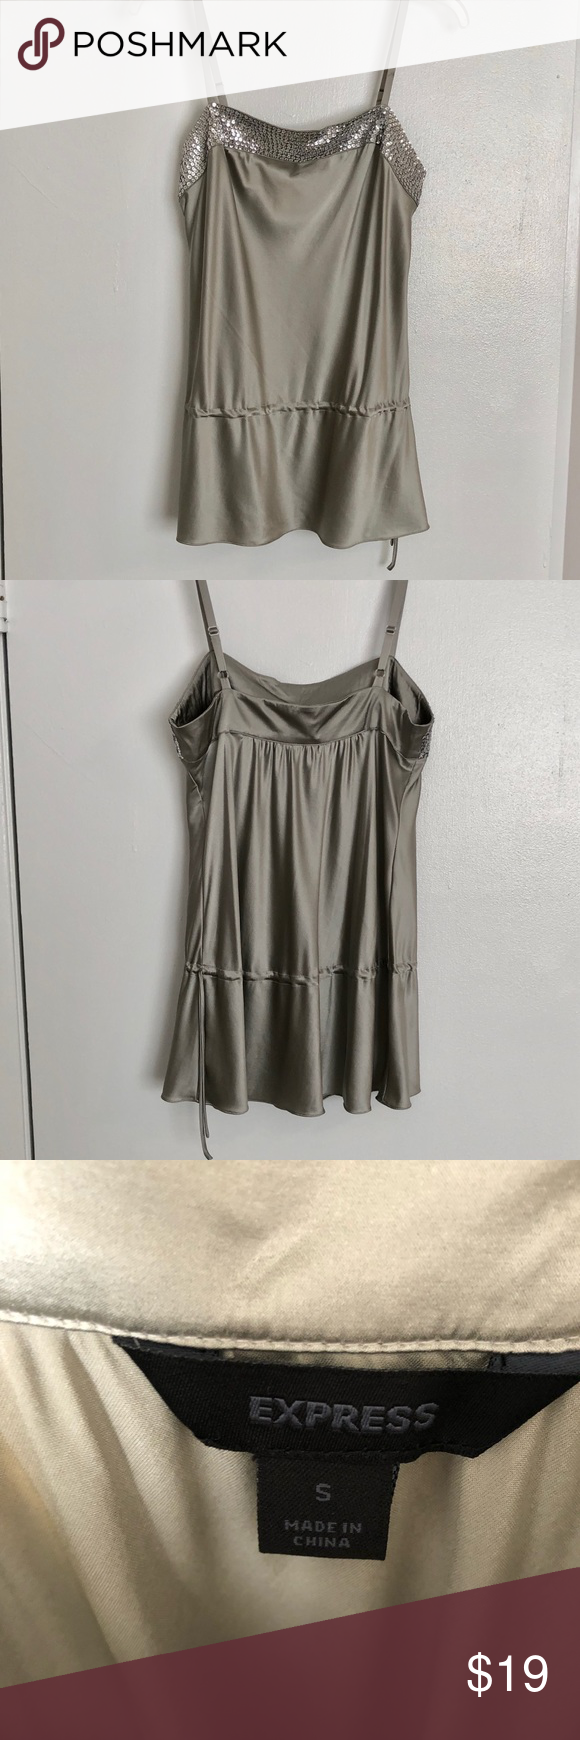 Gorgeous Silk Express Tank This beautiful tank is silky soft and flows beautifully.  Sequins add a touch of sophisticated flashiness.  Excellent condition, worn once and hand washed.  Ready to be worn at your next event! Express Tops Camisoles